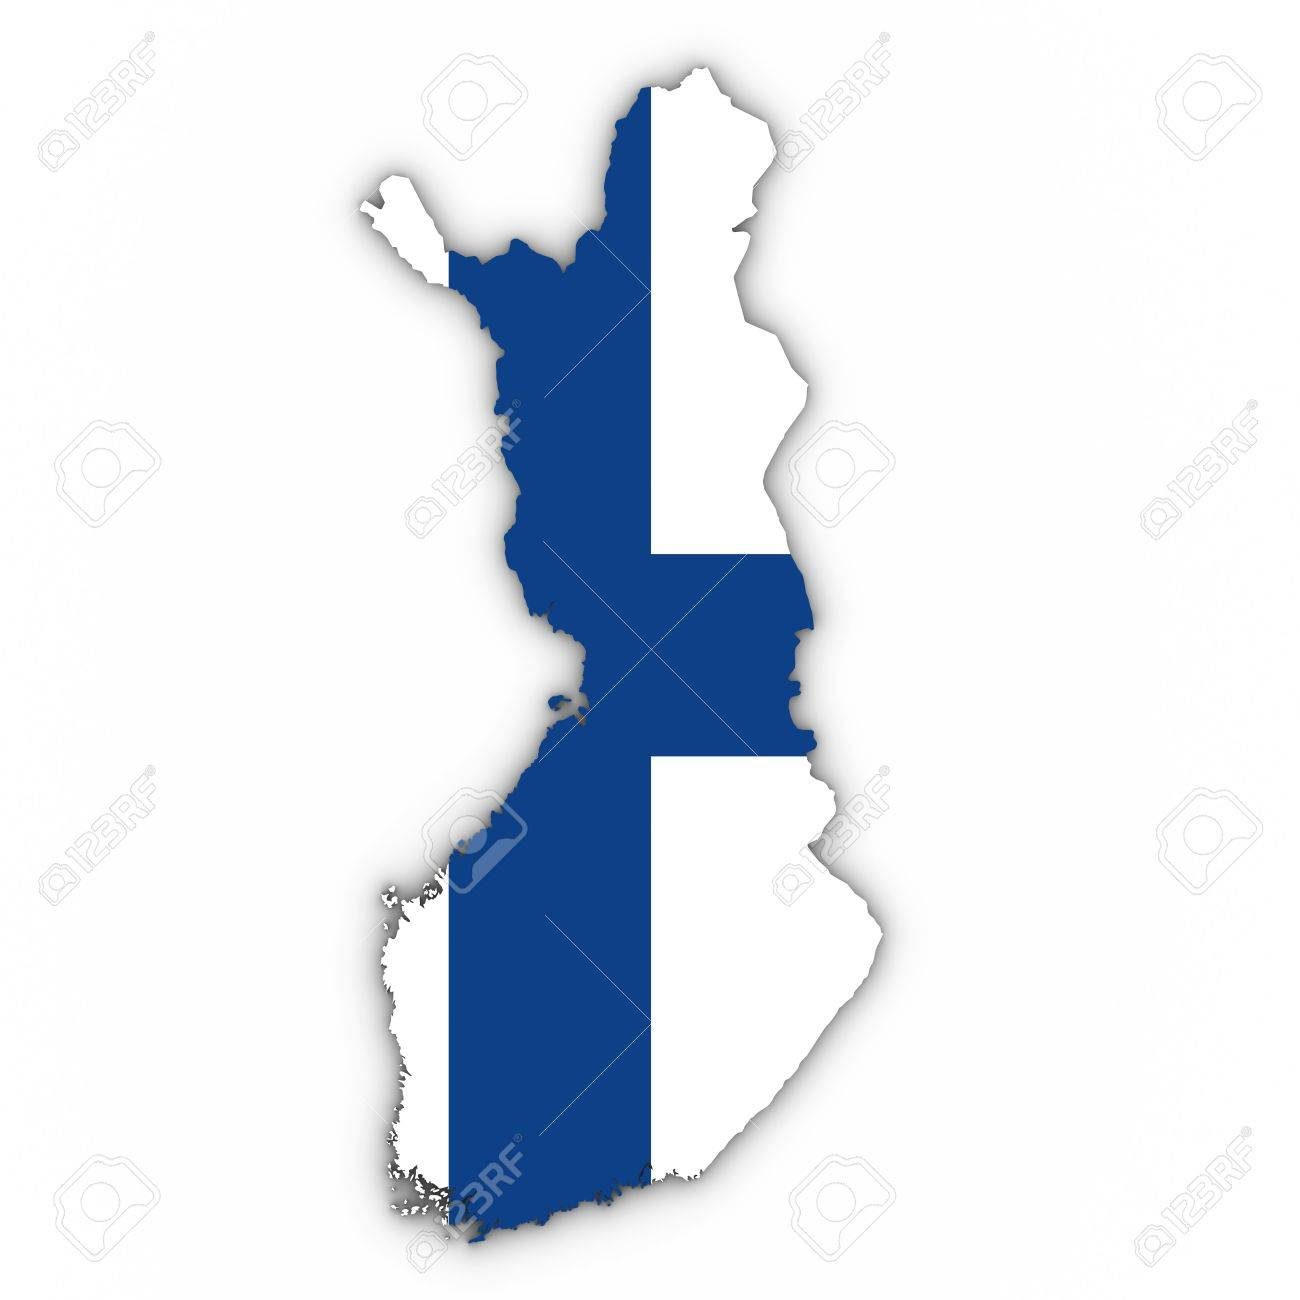 Finland Map Outline With Finnish Flag On White With Shadows 3d